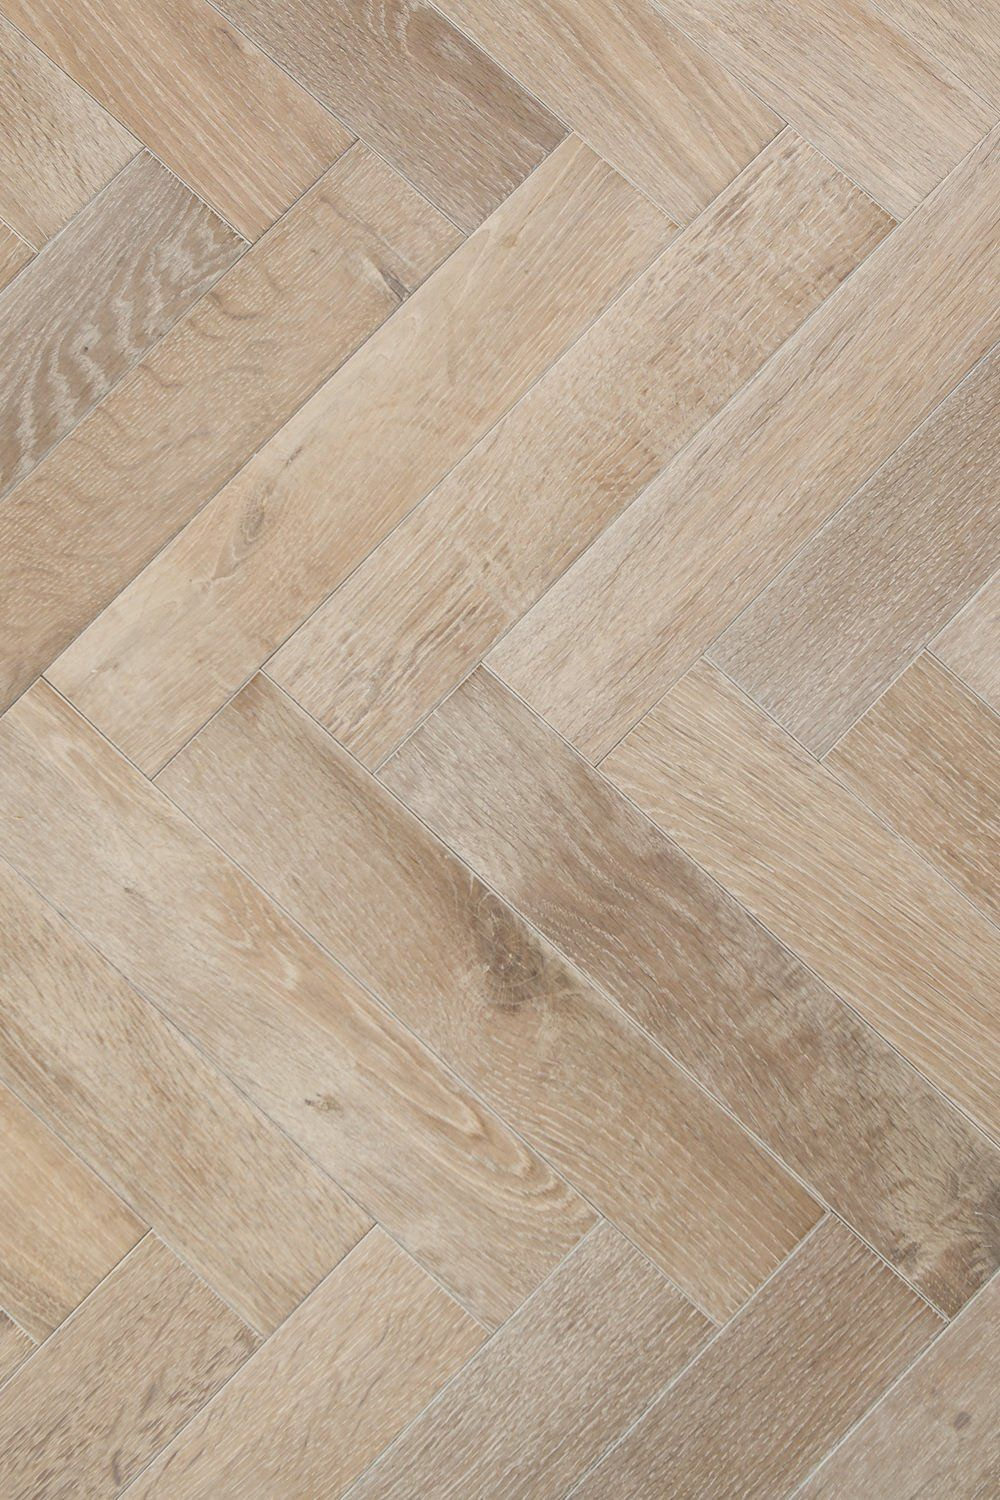 """Antique Oak Flooring """"Slate Grey Parquet"""" available in Character ..."""